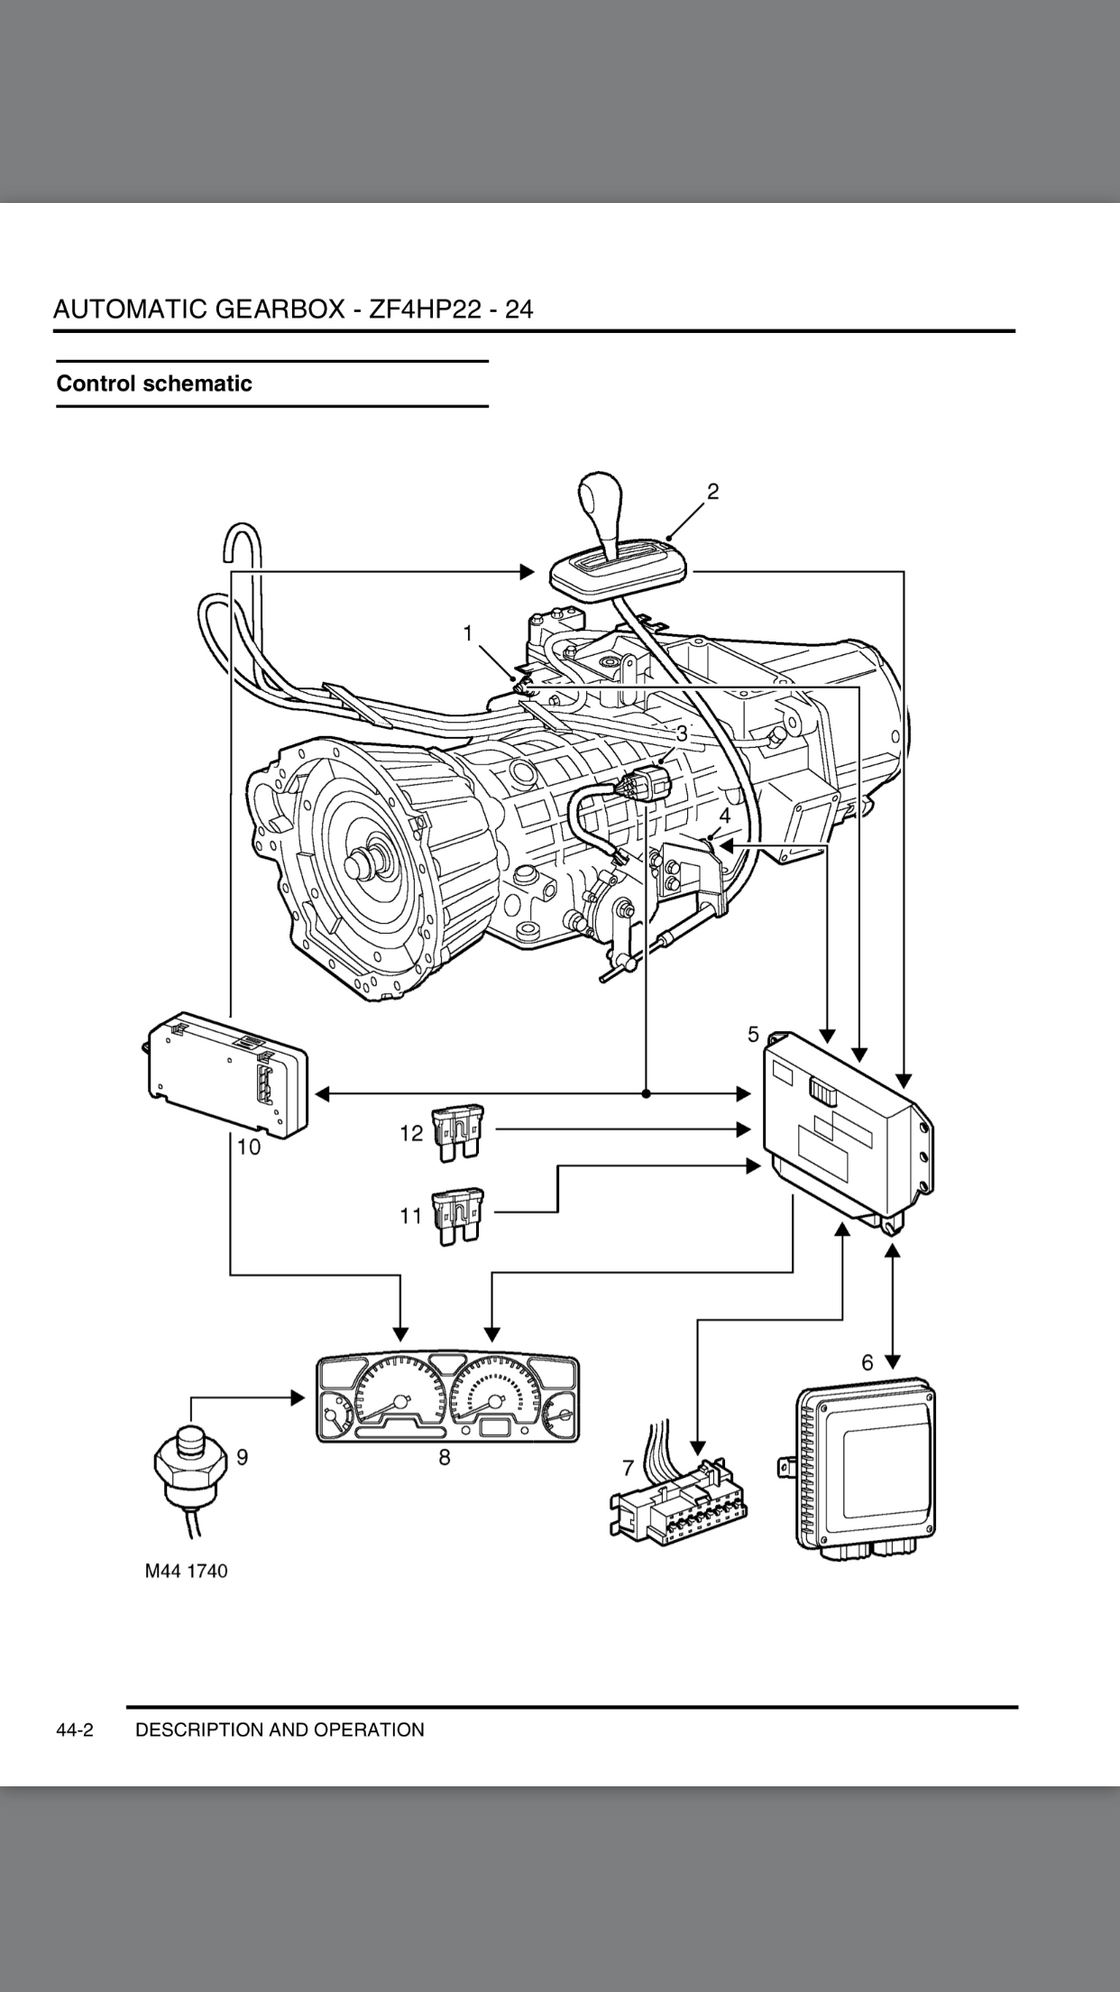 oliver 770 wiring diagram oliver 770 power steering wiring